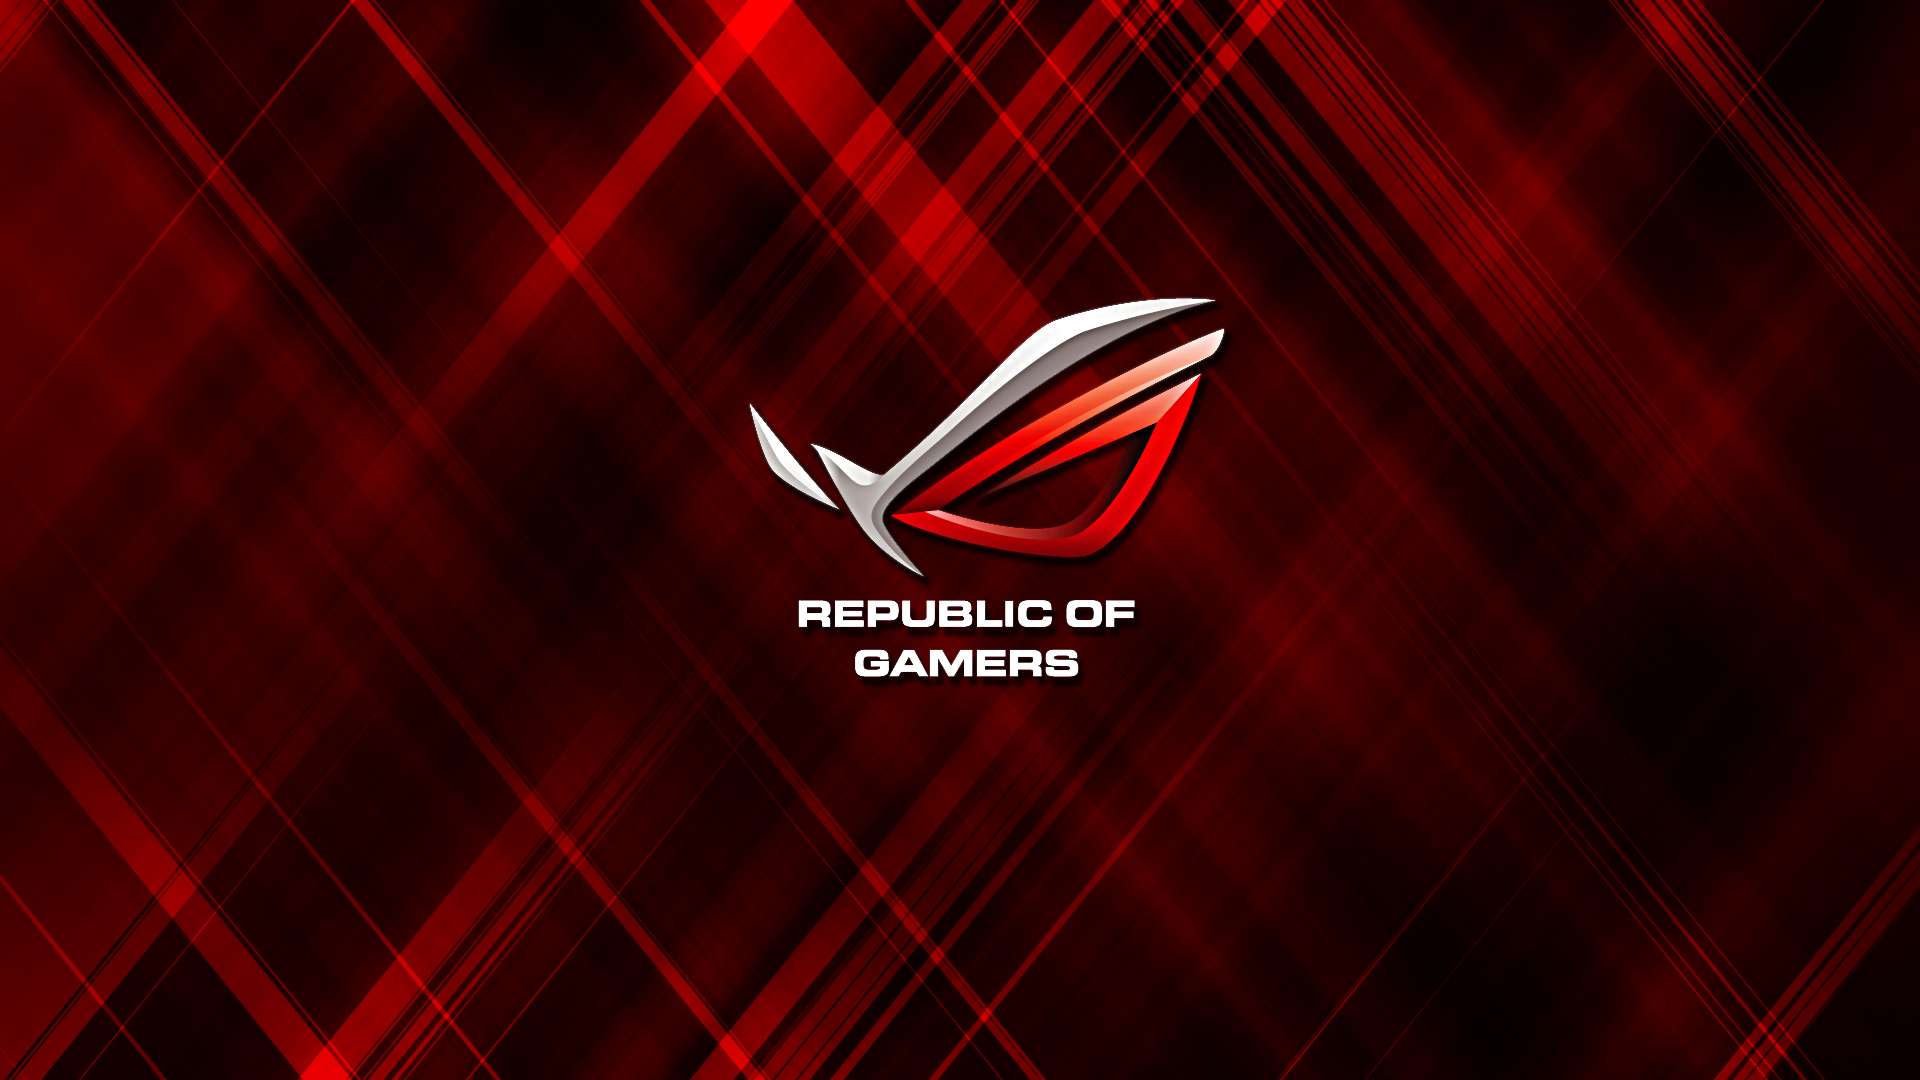 Red Asus Wallpaper: Wallpaper Competition: Vote For Your Favorite